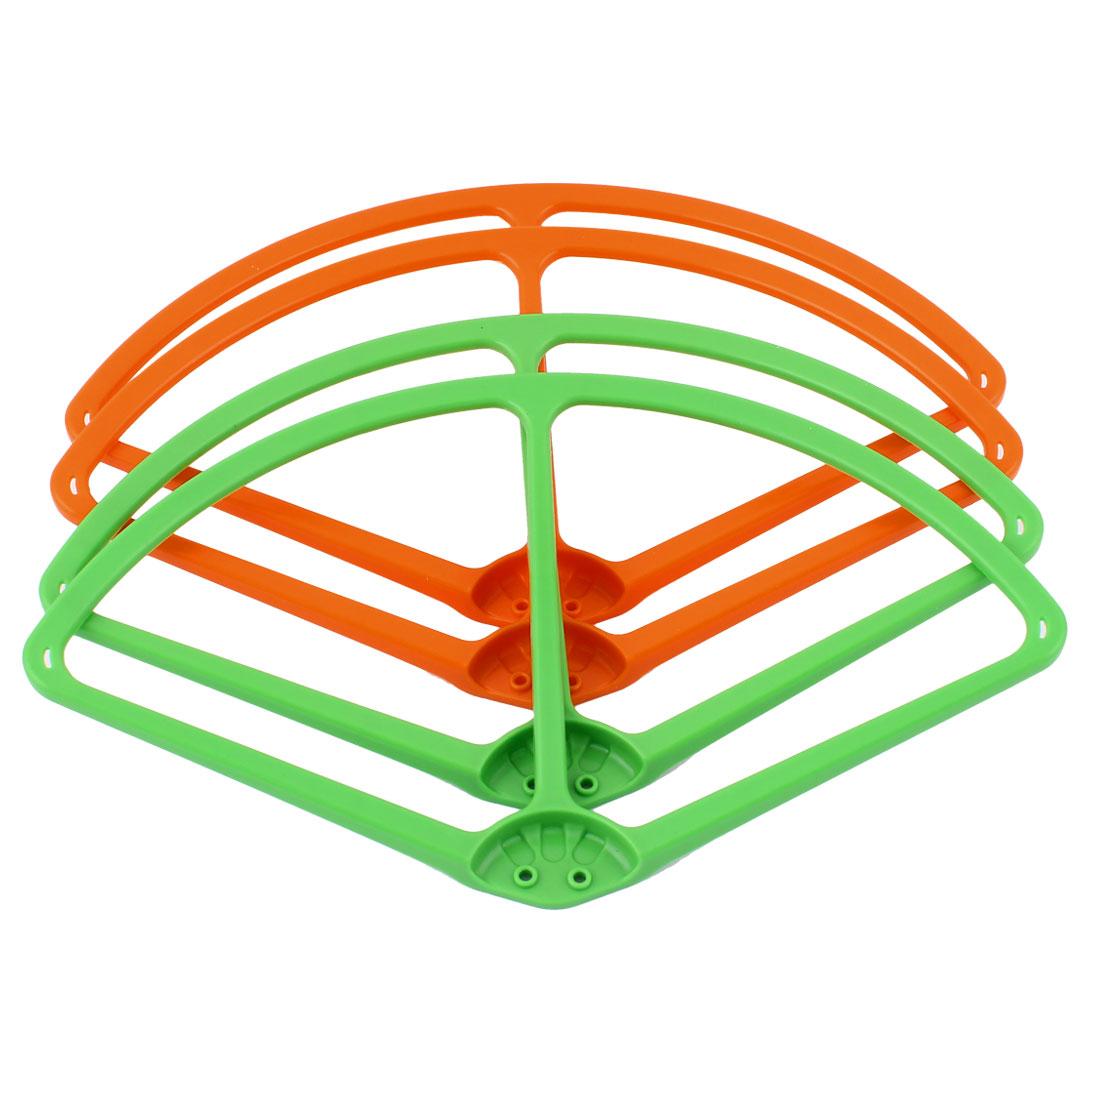 "9"" Propeller Prop Protective Guard Bumper Set Orange Green for DJI Phantom 2 Vision"